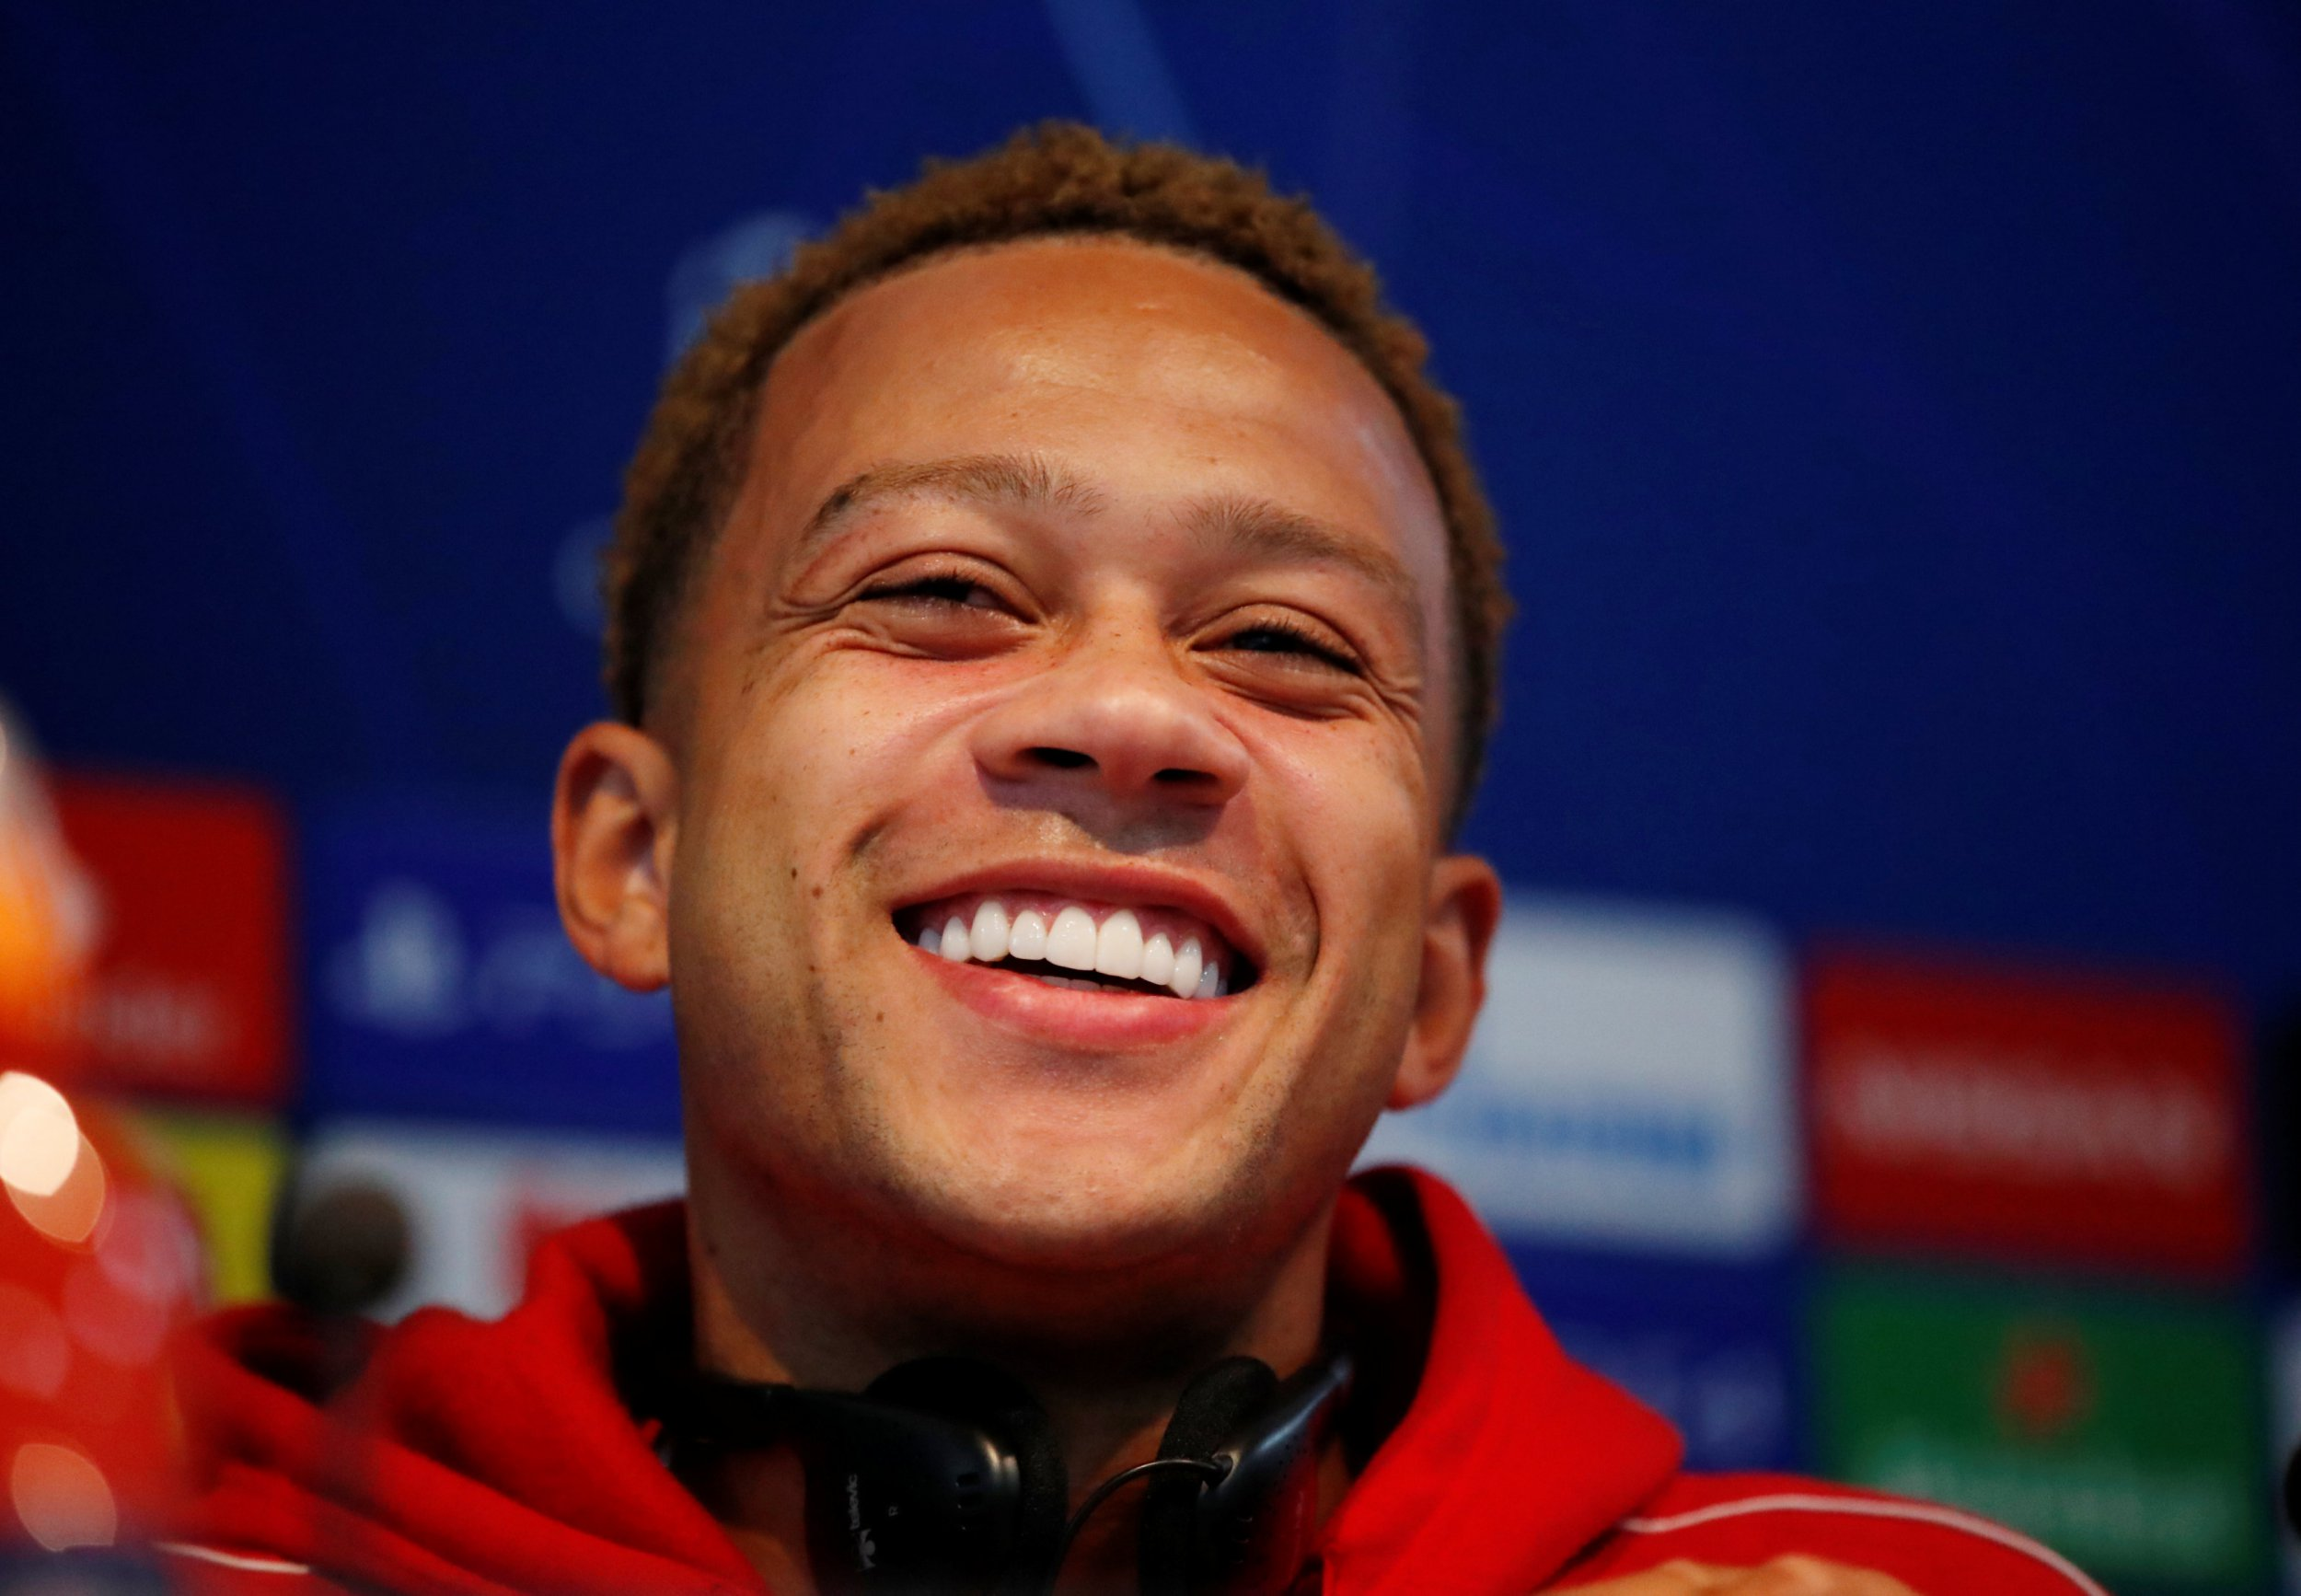 Manchester United flop Memphis Depay laughs off criticism from Wayne Rooney